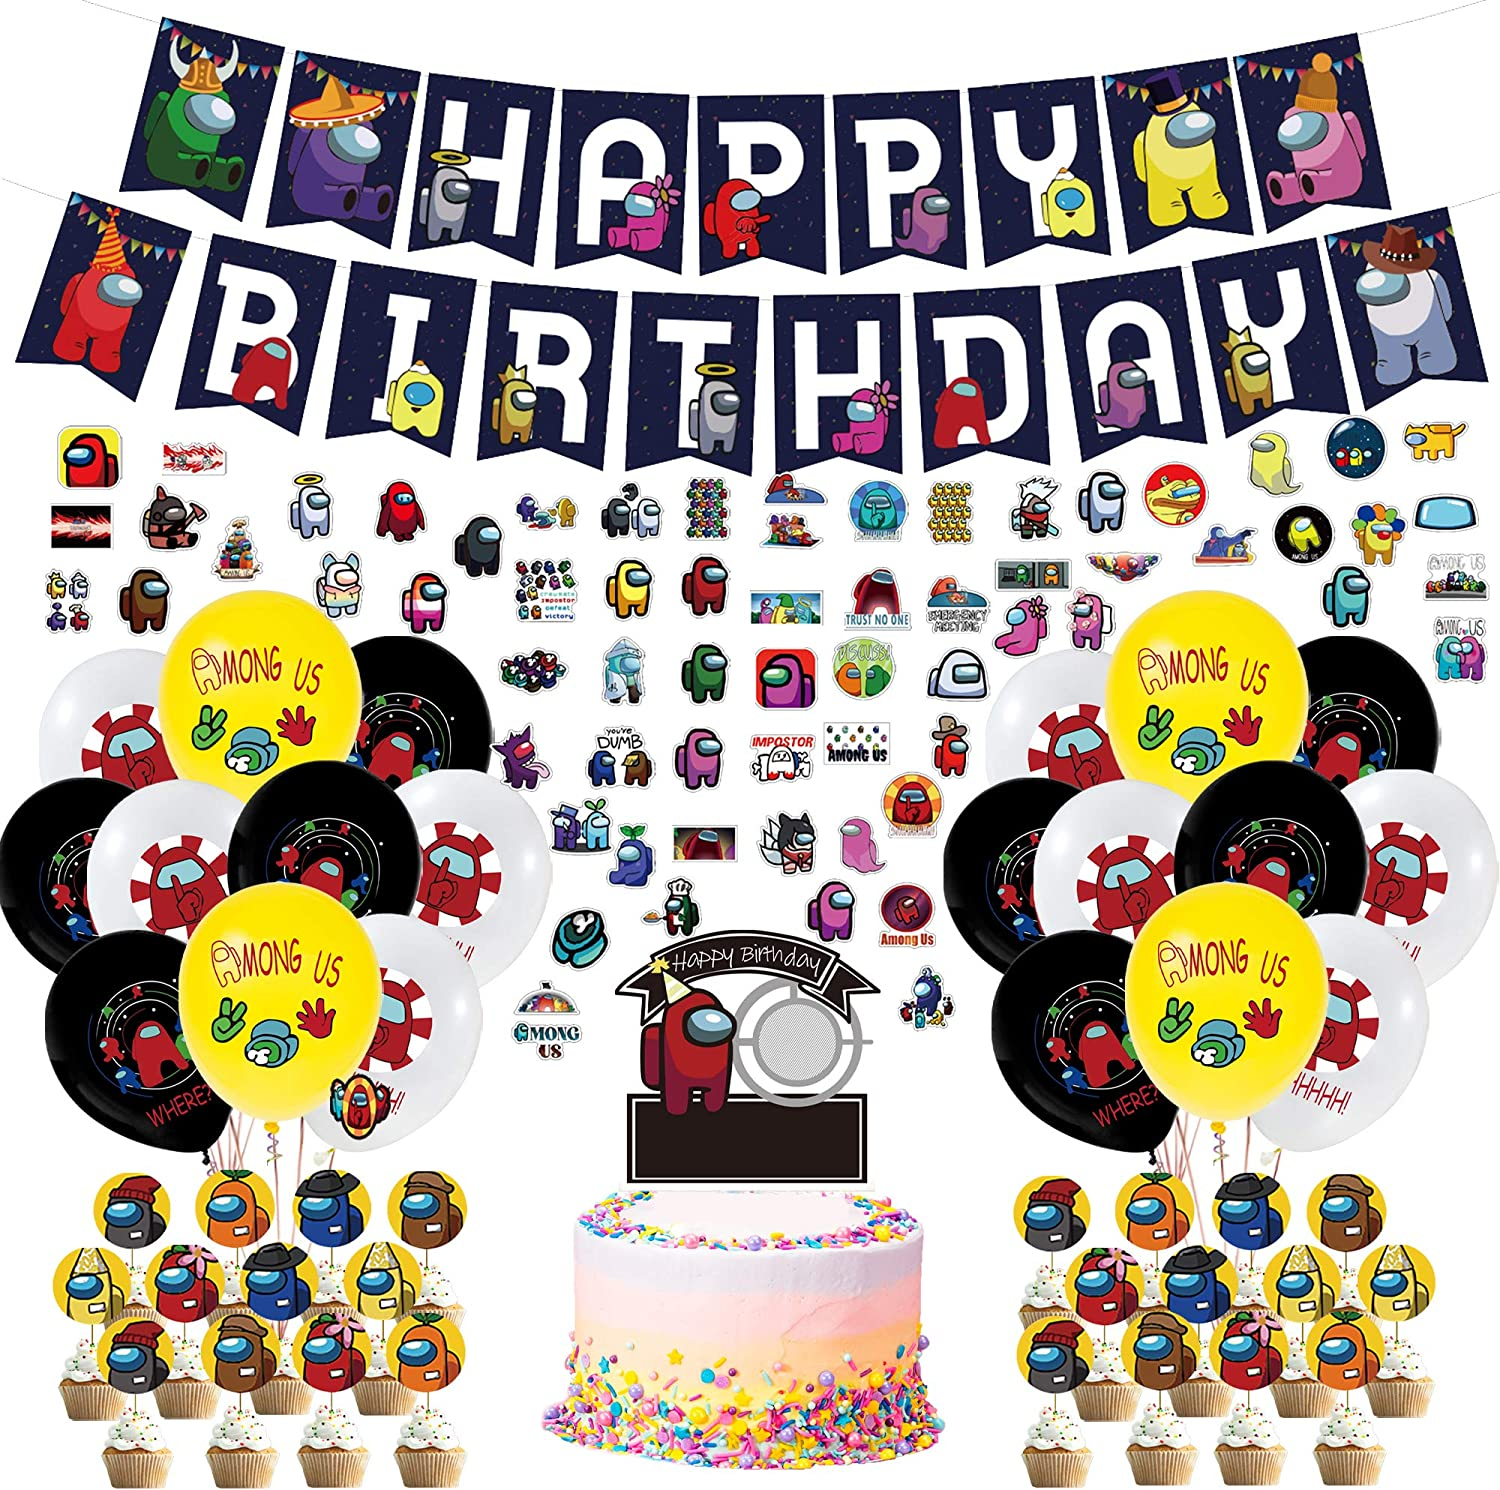 Swirls Among Us Stickers Among Us Birthday Party Decoration for Boys and Girls. Among Us Party Decoration for Kids Birthday Come with Balloons Cake Topper 98 PCS Among Us Party Supplies Cupcake Topper